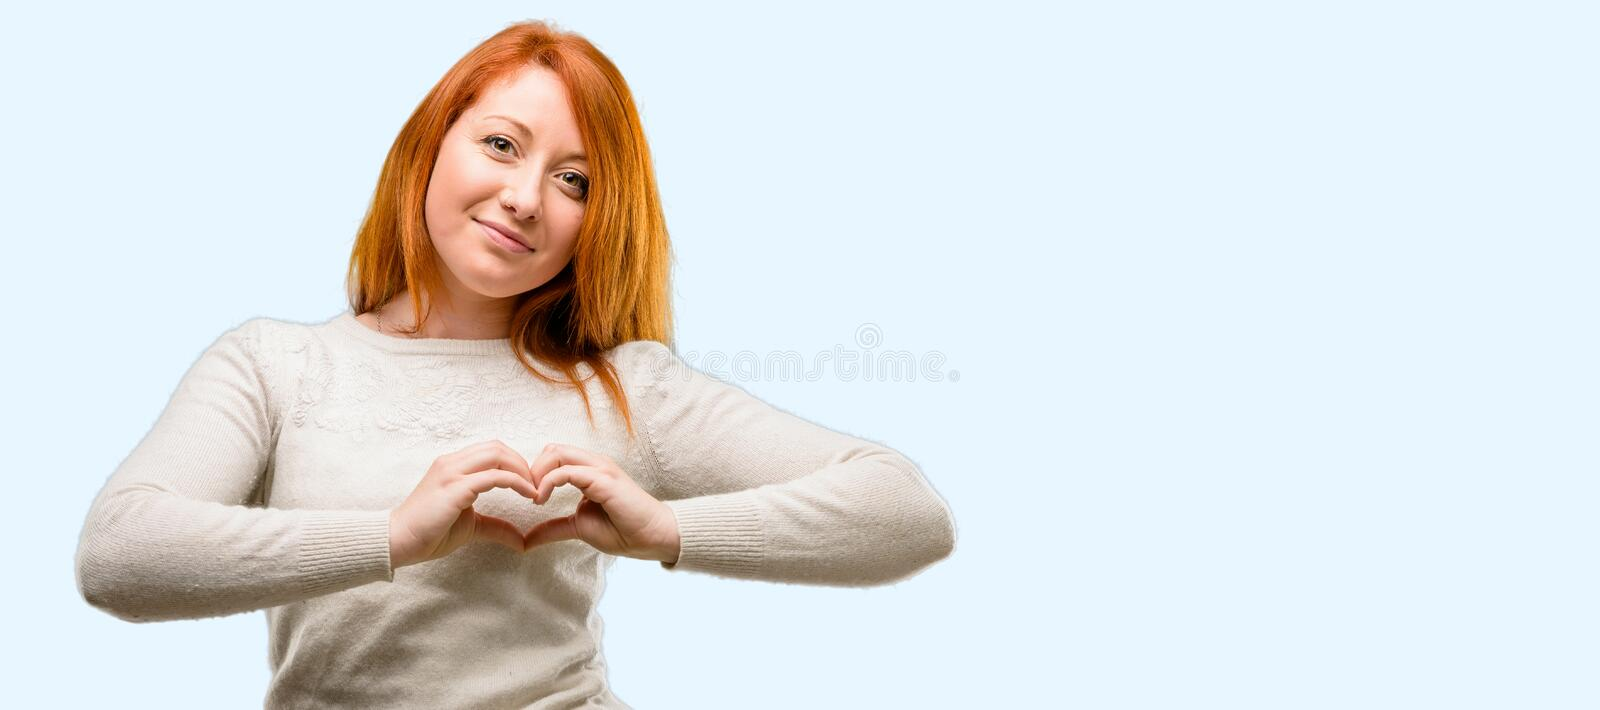 Young beautiful redhead woman isolated over blue background stock images